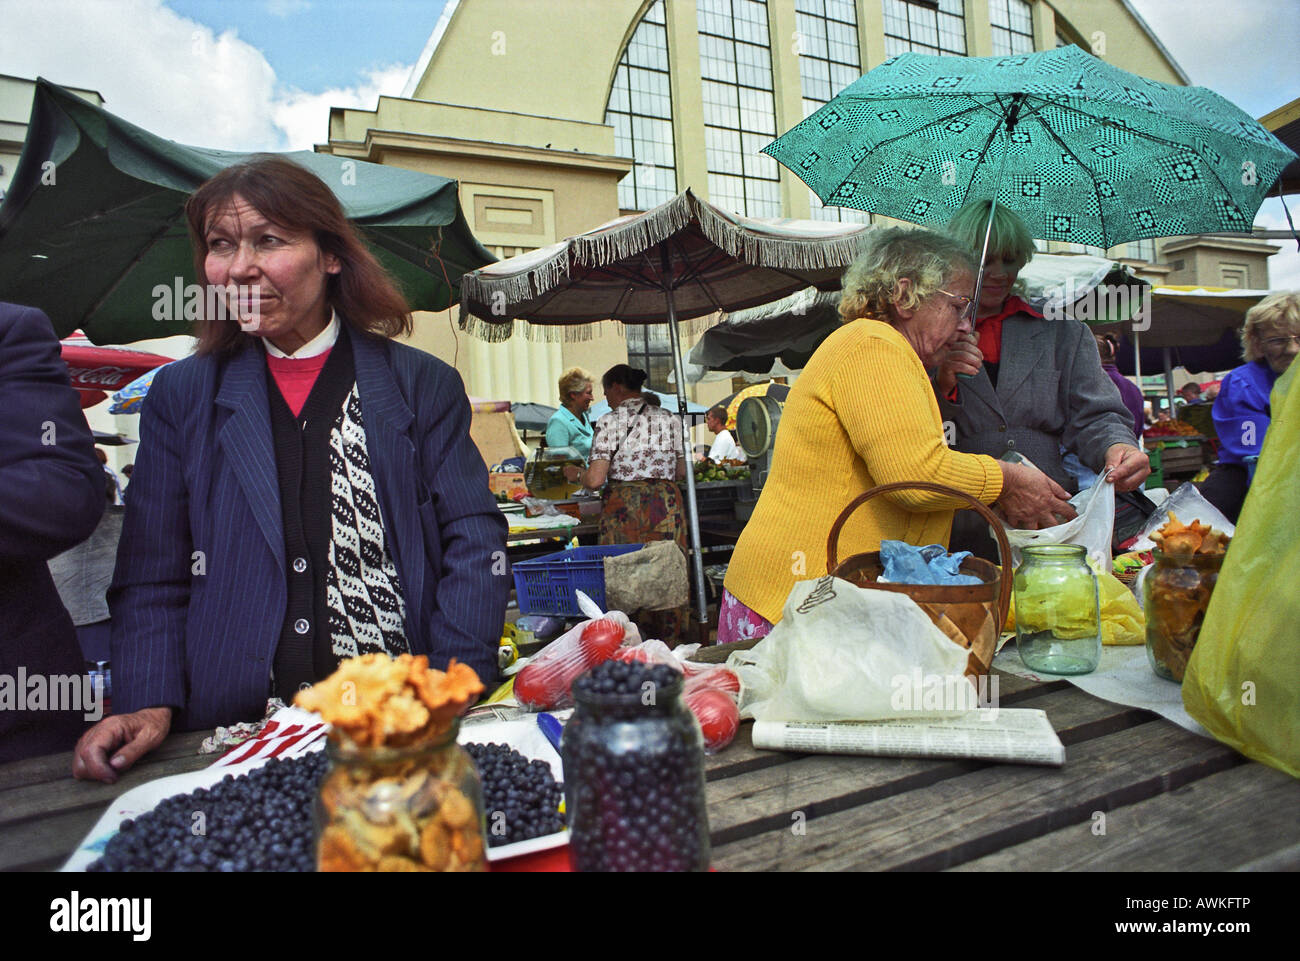 Market scene at the central marketplace in Riga, Latvia - Stock Image